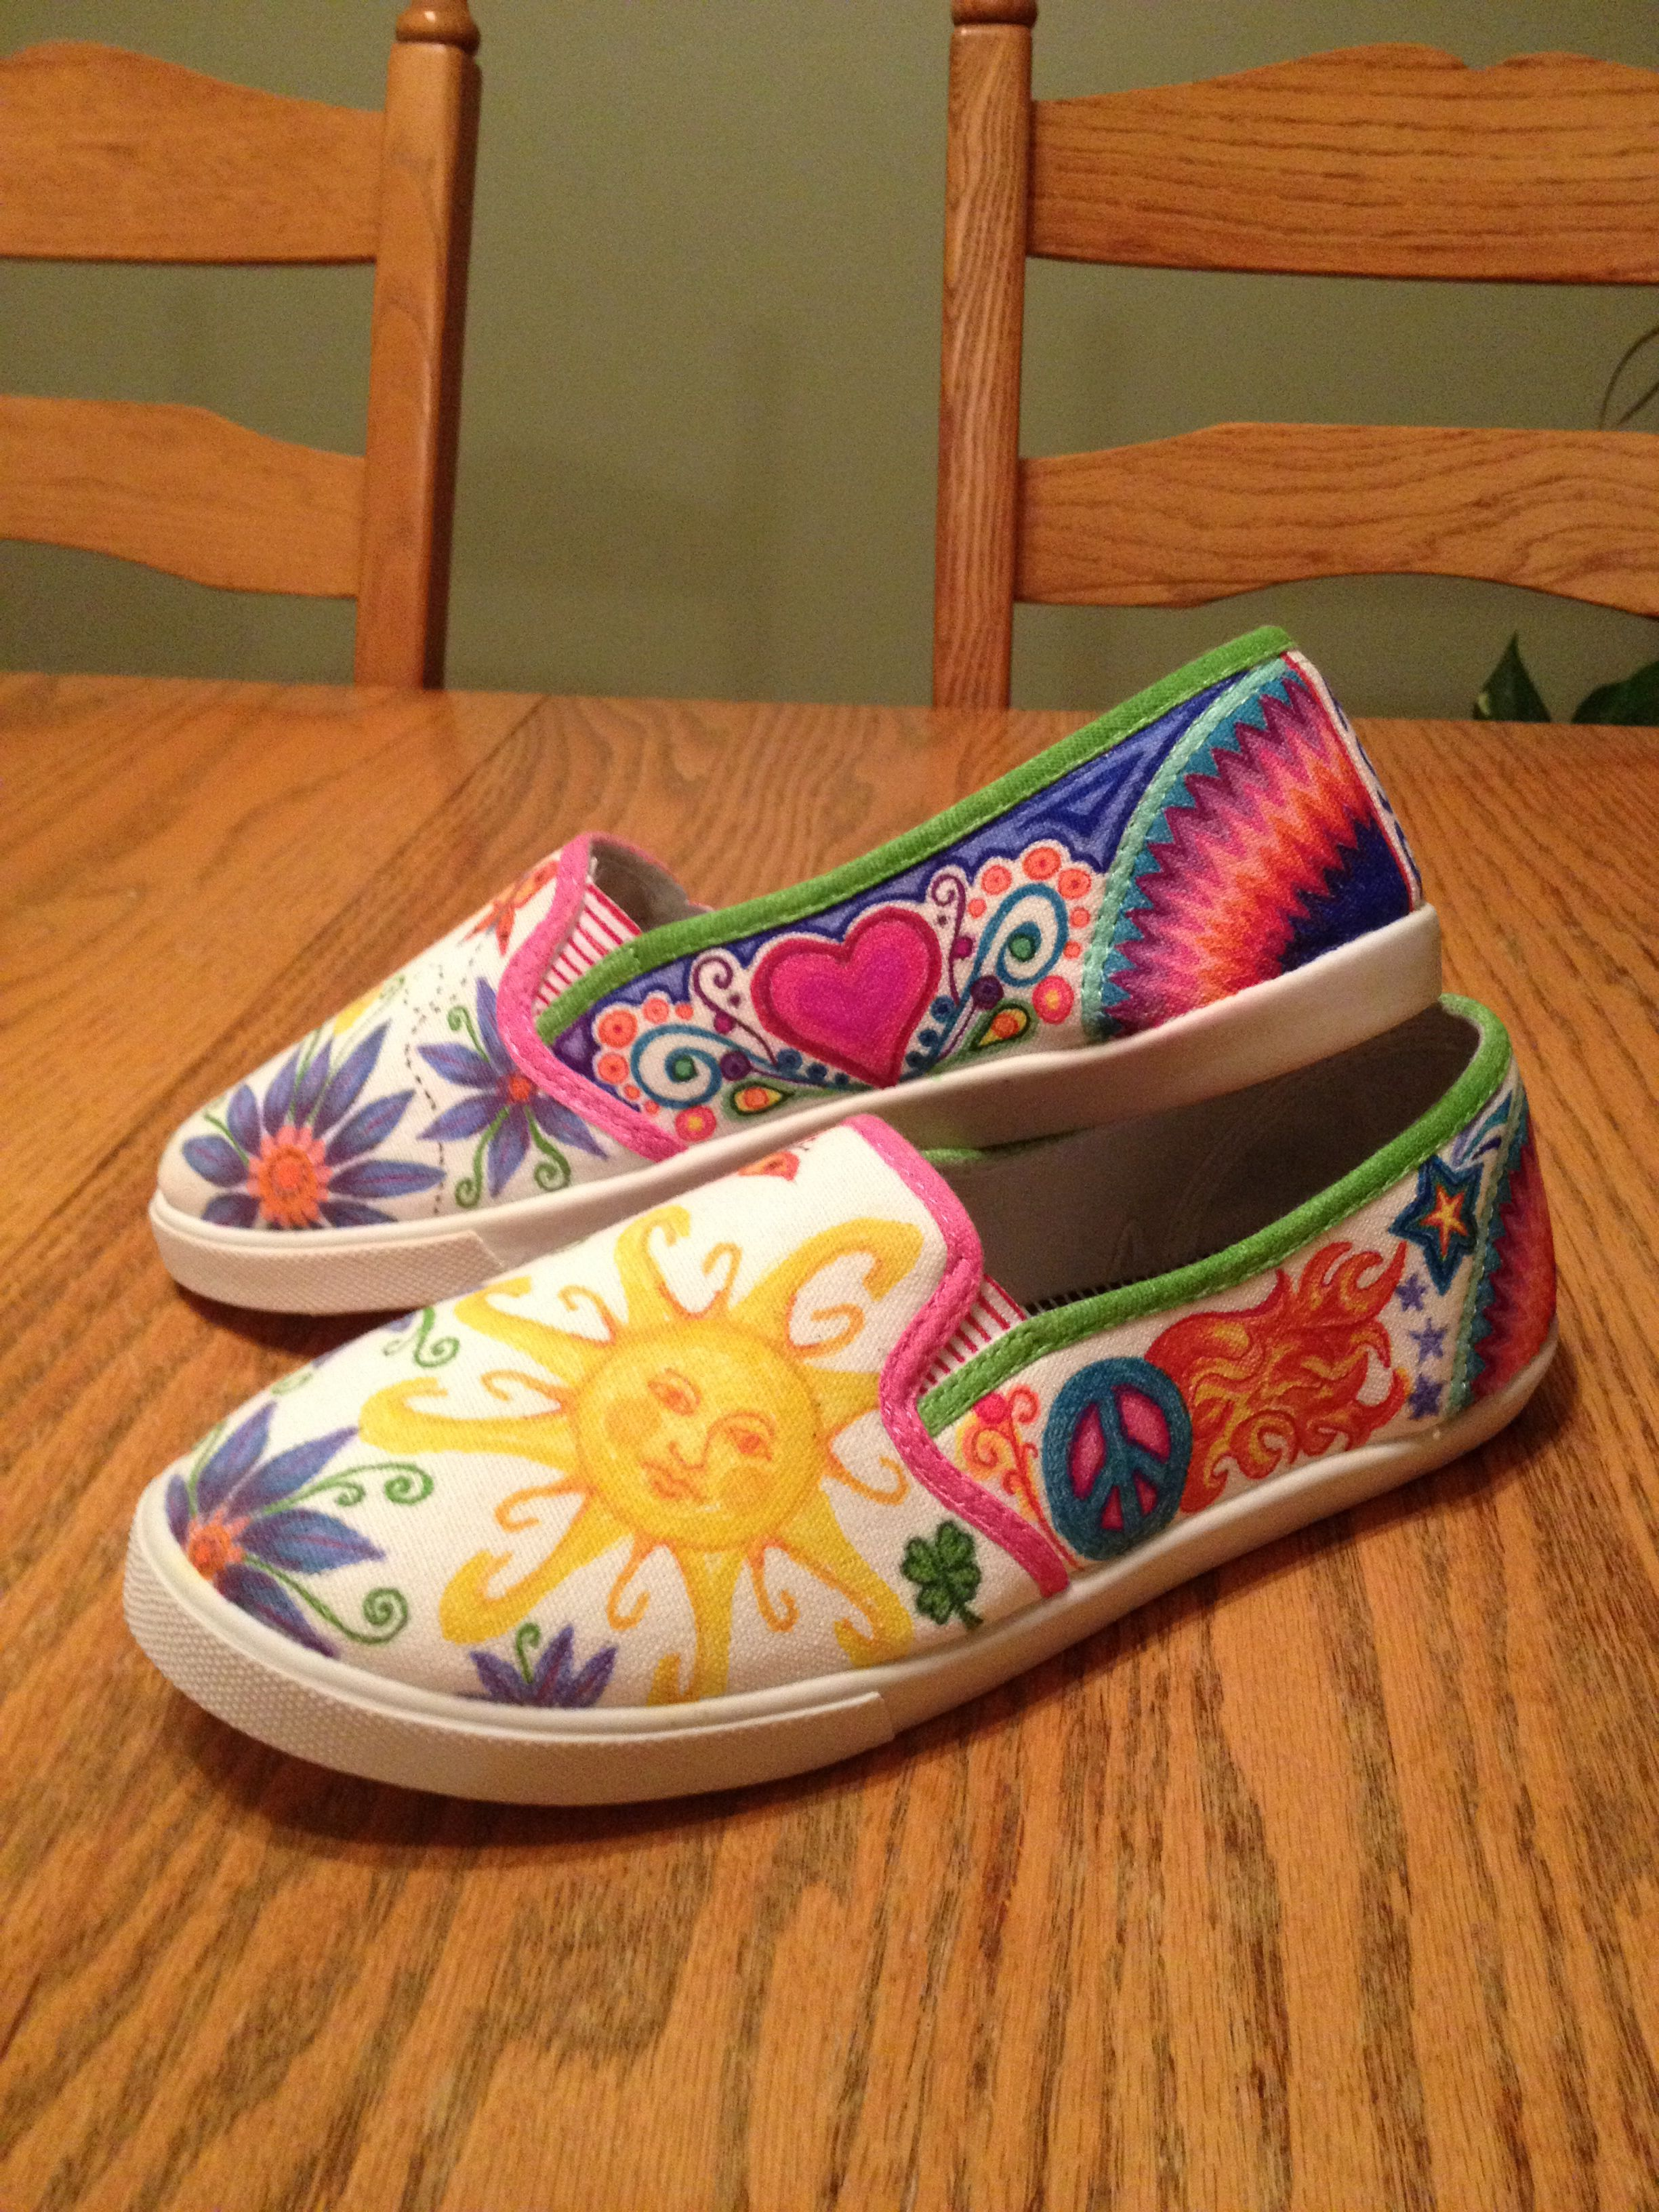 Diy Fun Artsy Design Sharpie On Canvas Tennis Shoes Featuring Colorful Graphics Of Flowers Sunshine Peace Sign Heart Sharpie Shoes Shoe Refashion Diy Shoes